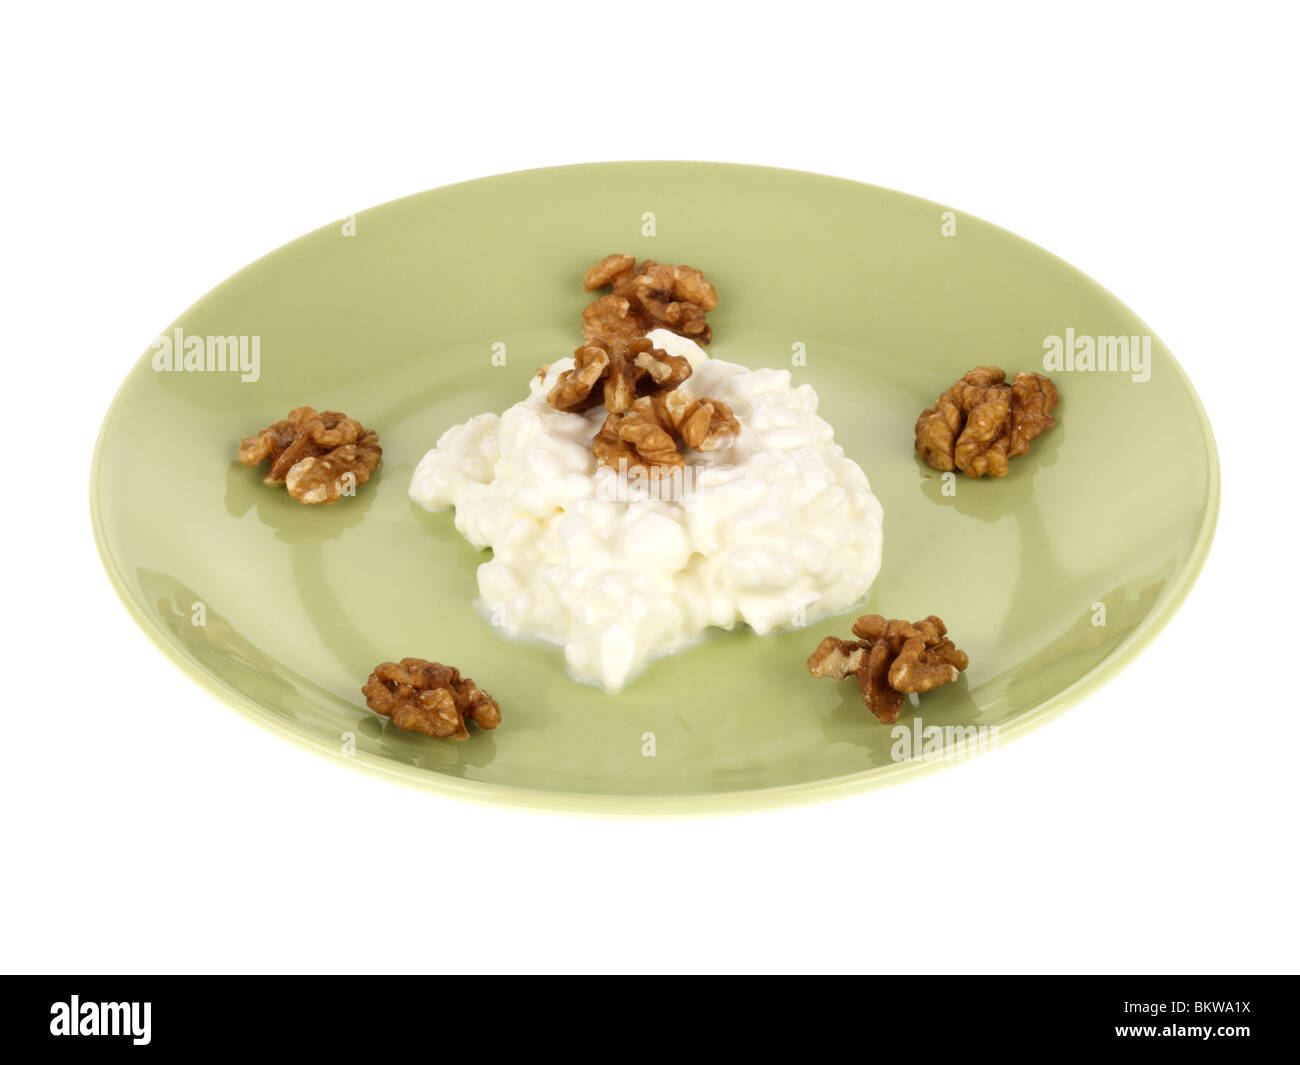 Walnuts with Cottage Cheese Stock Photo